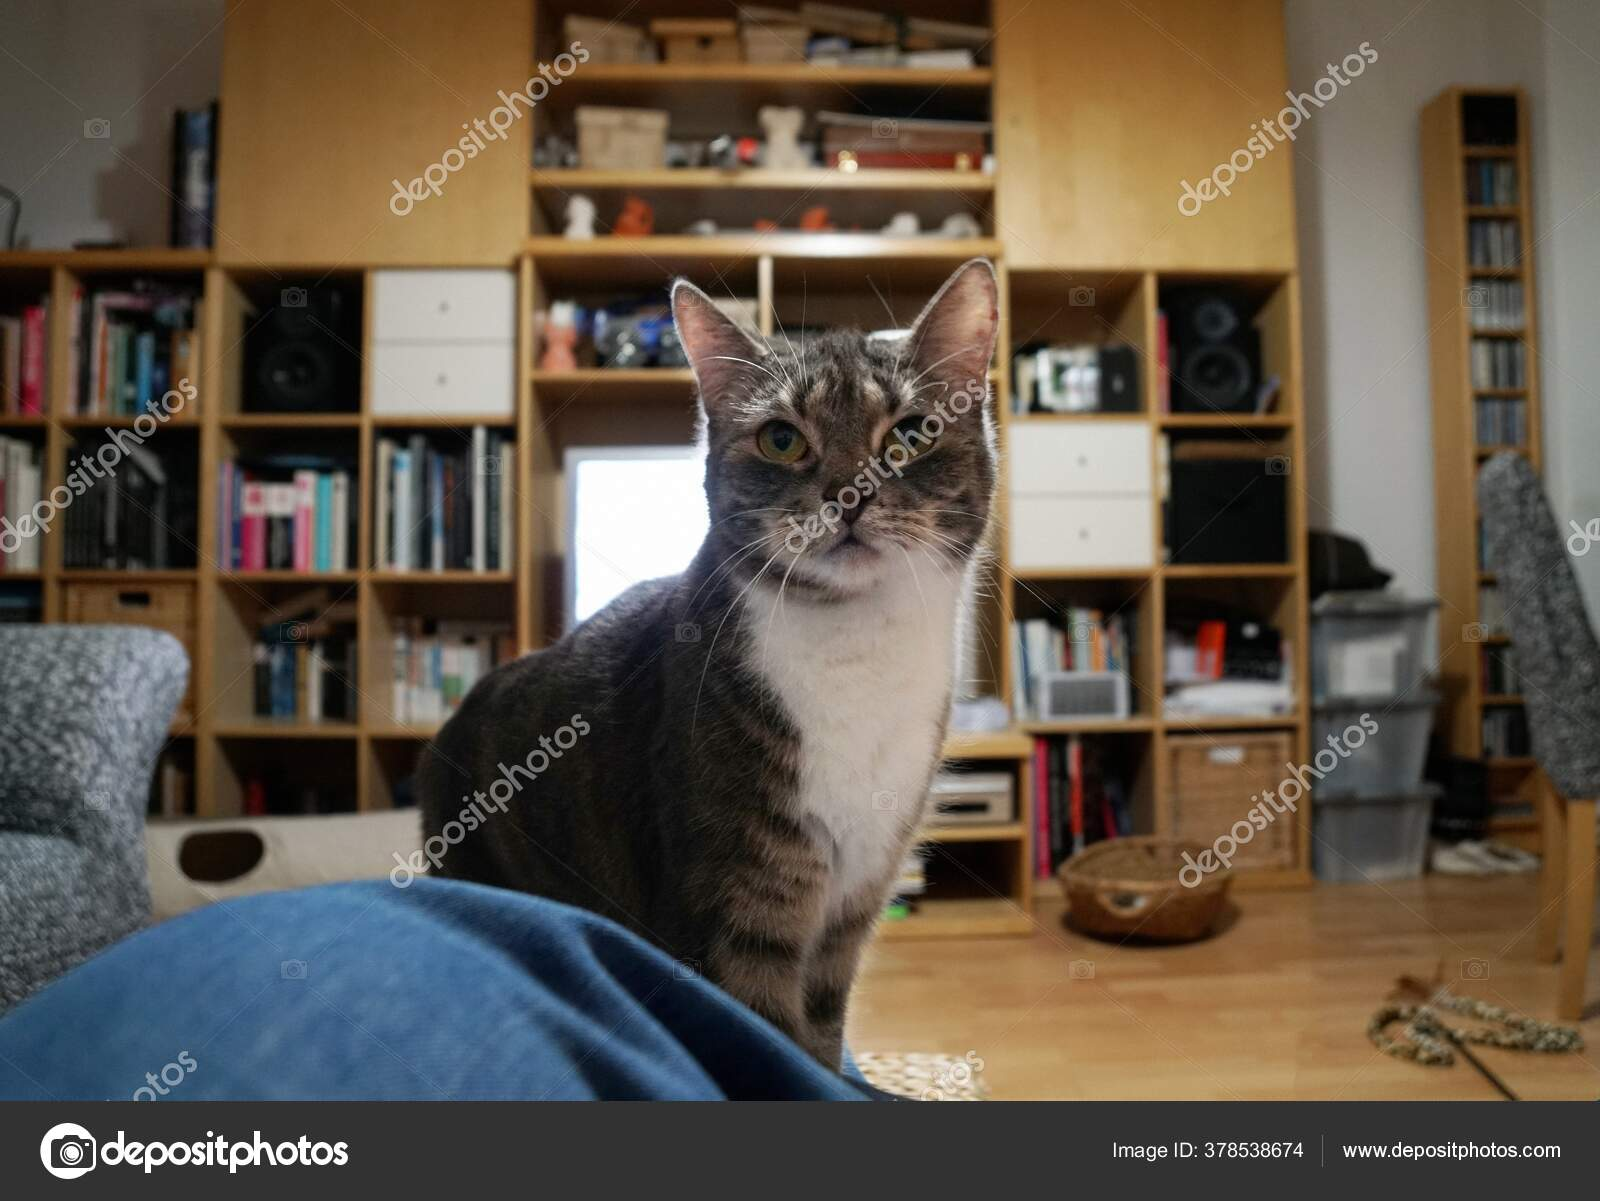 Cute Domestic Cat Captured Middle Bedroom Wooden Shelves Stock Photo Image By C Wirestock 378538674